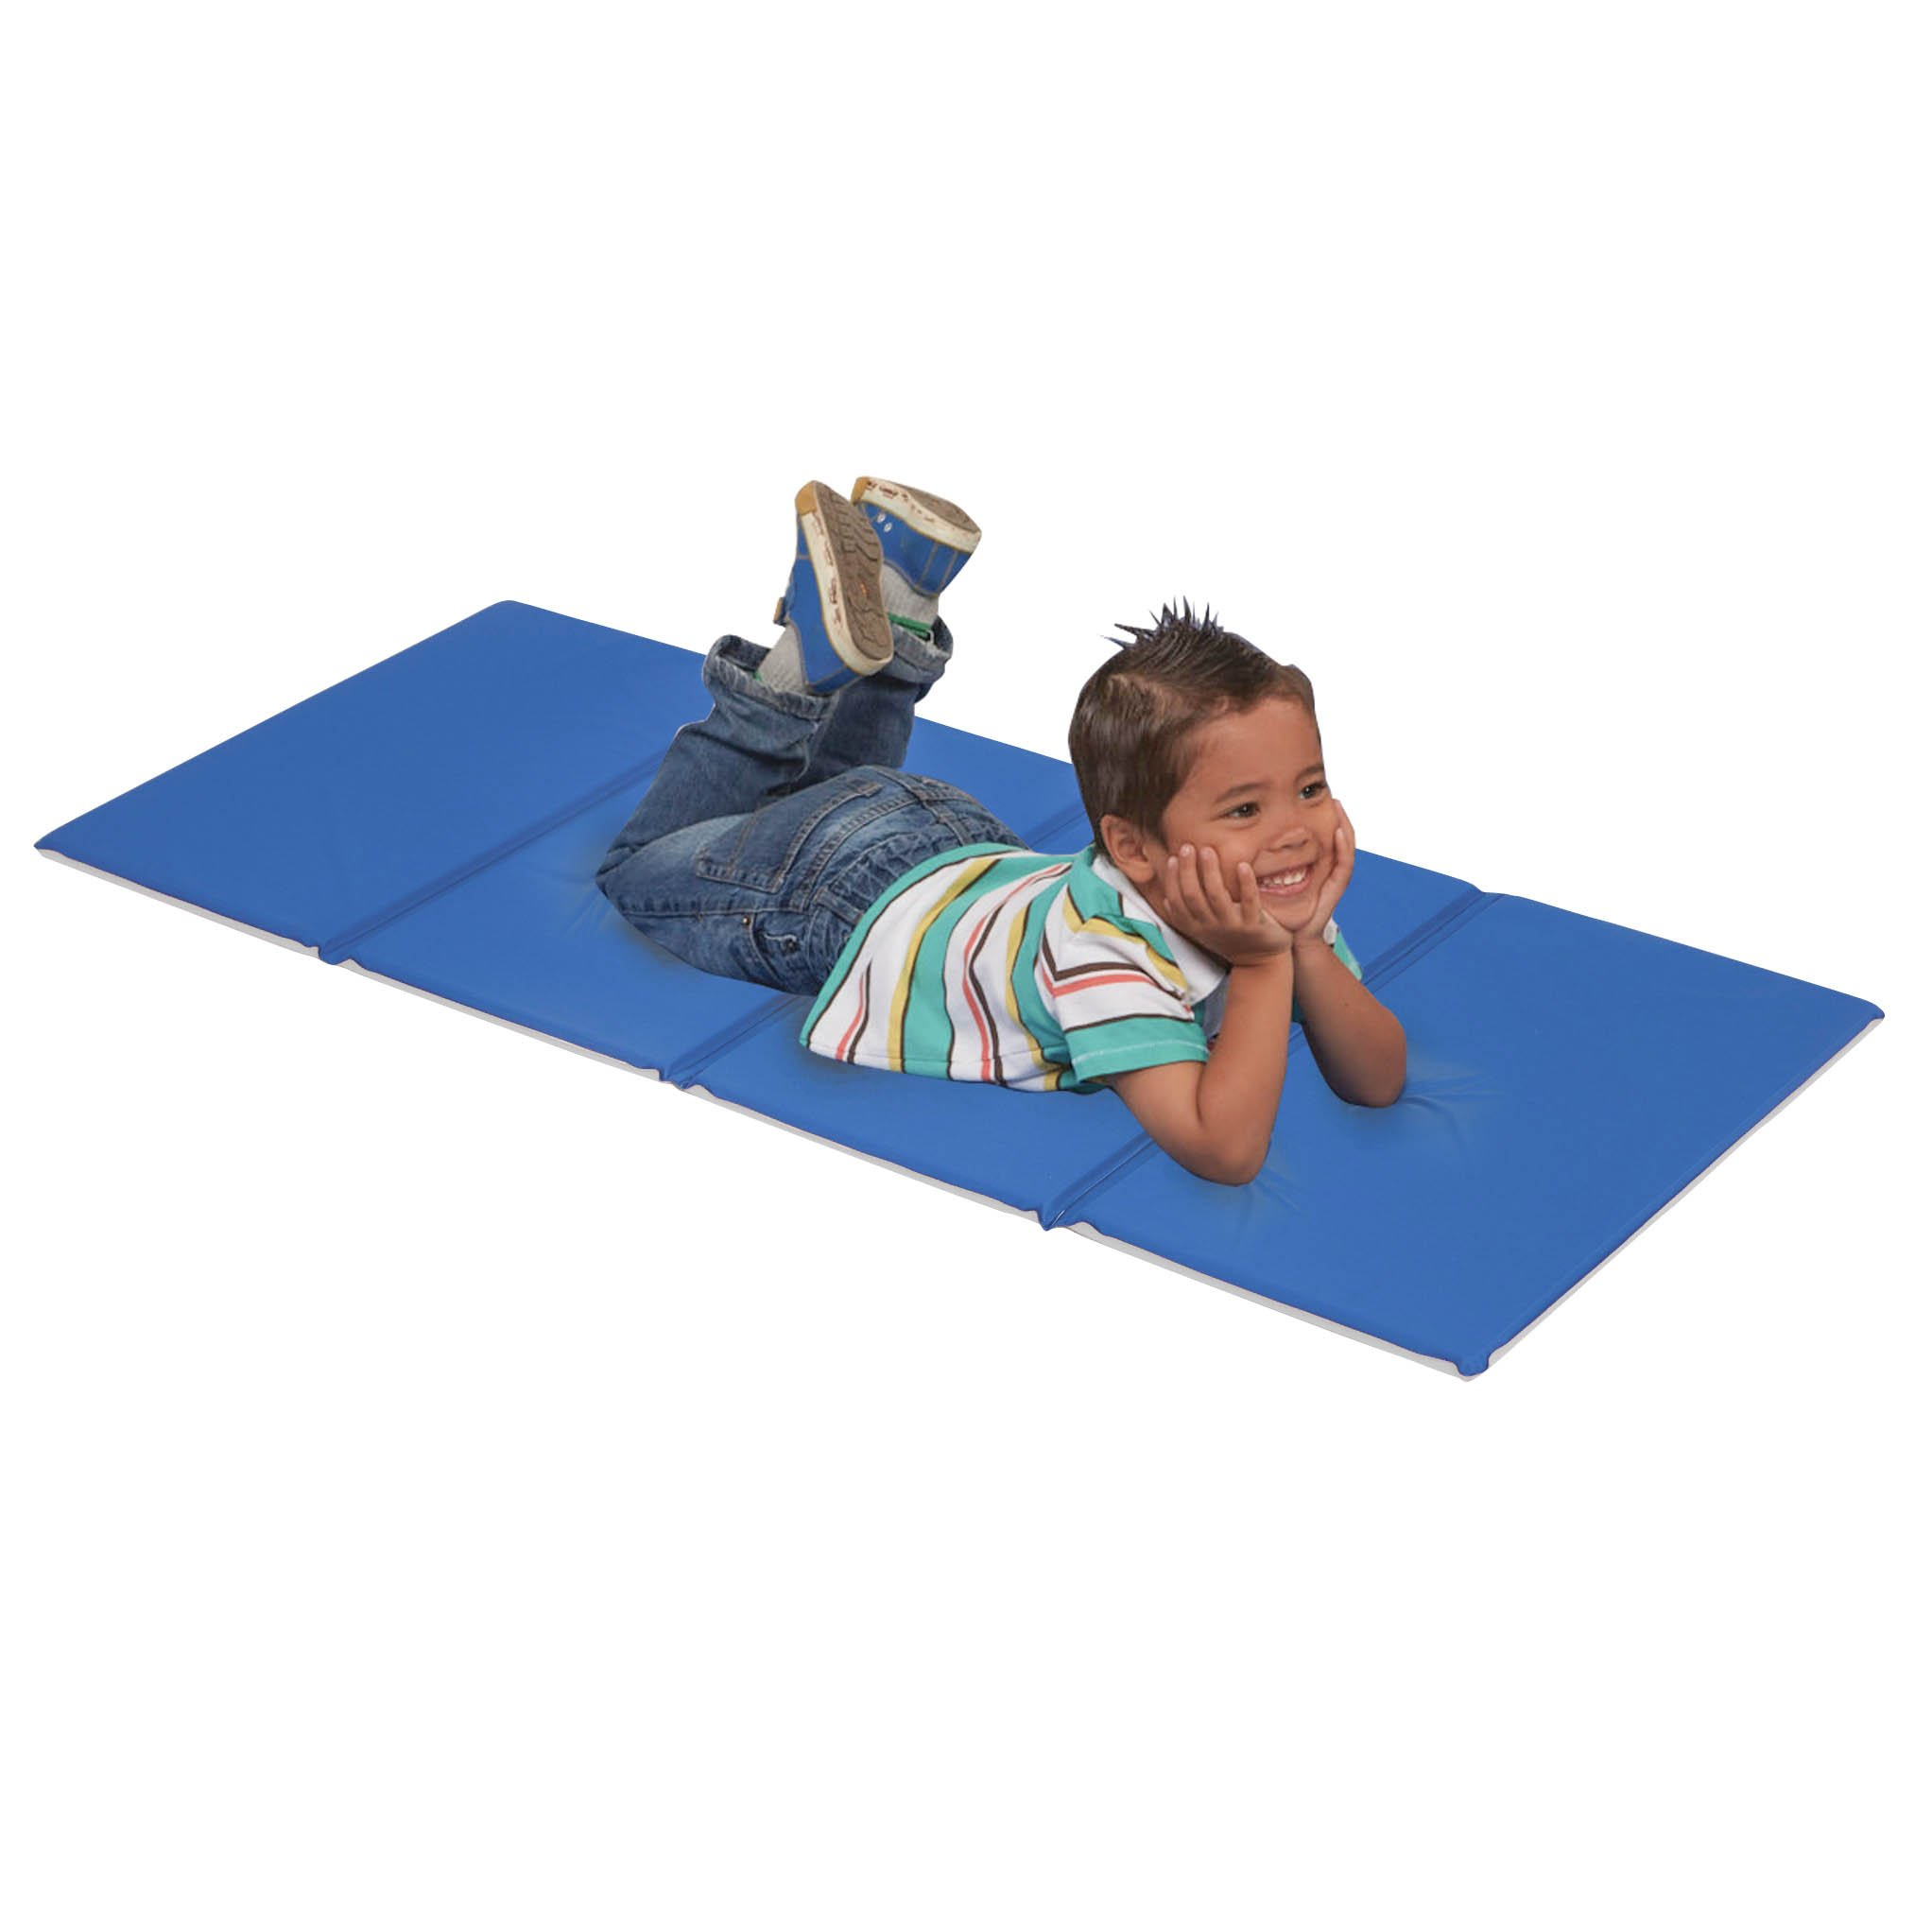 New Toddler Rest Sleep Nap Mat 4 Fold Daycare Value For